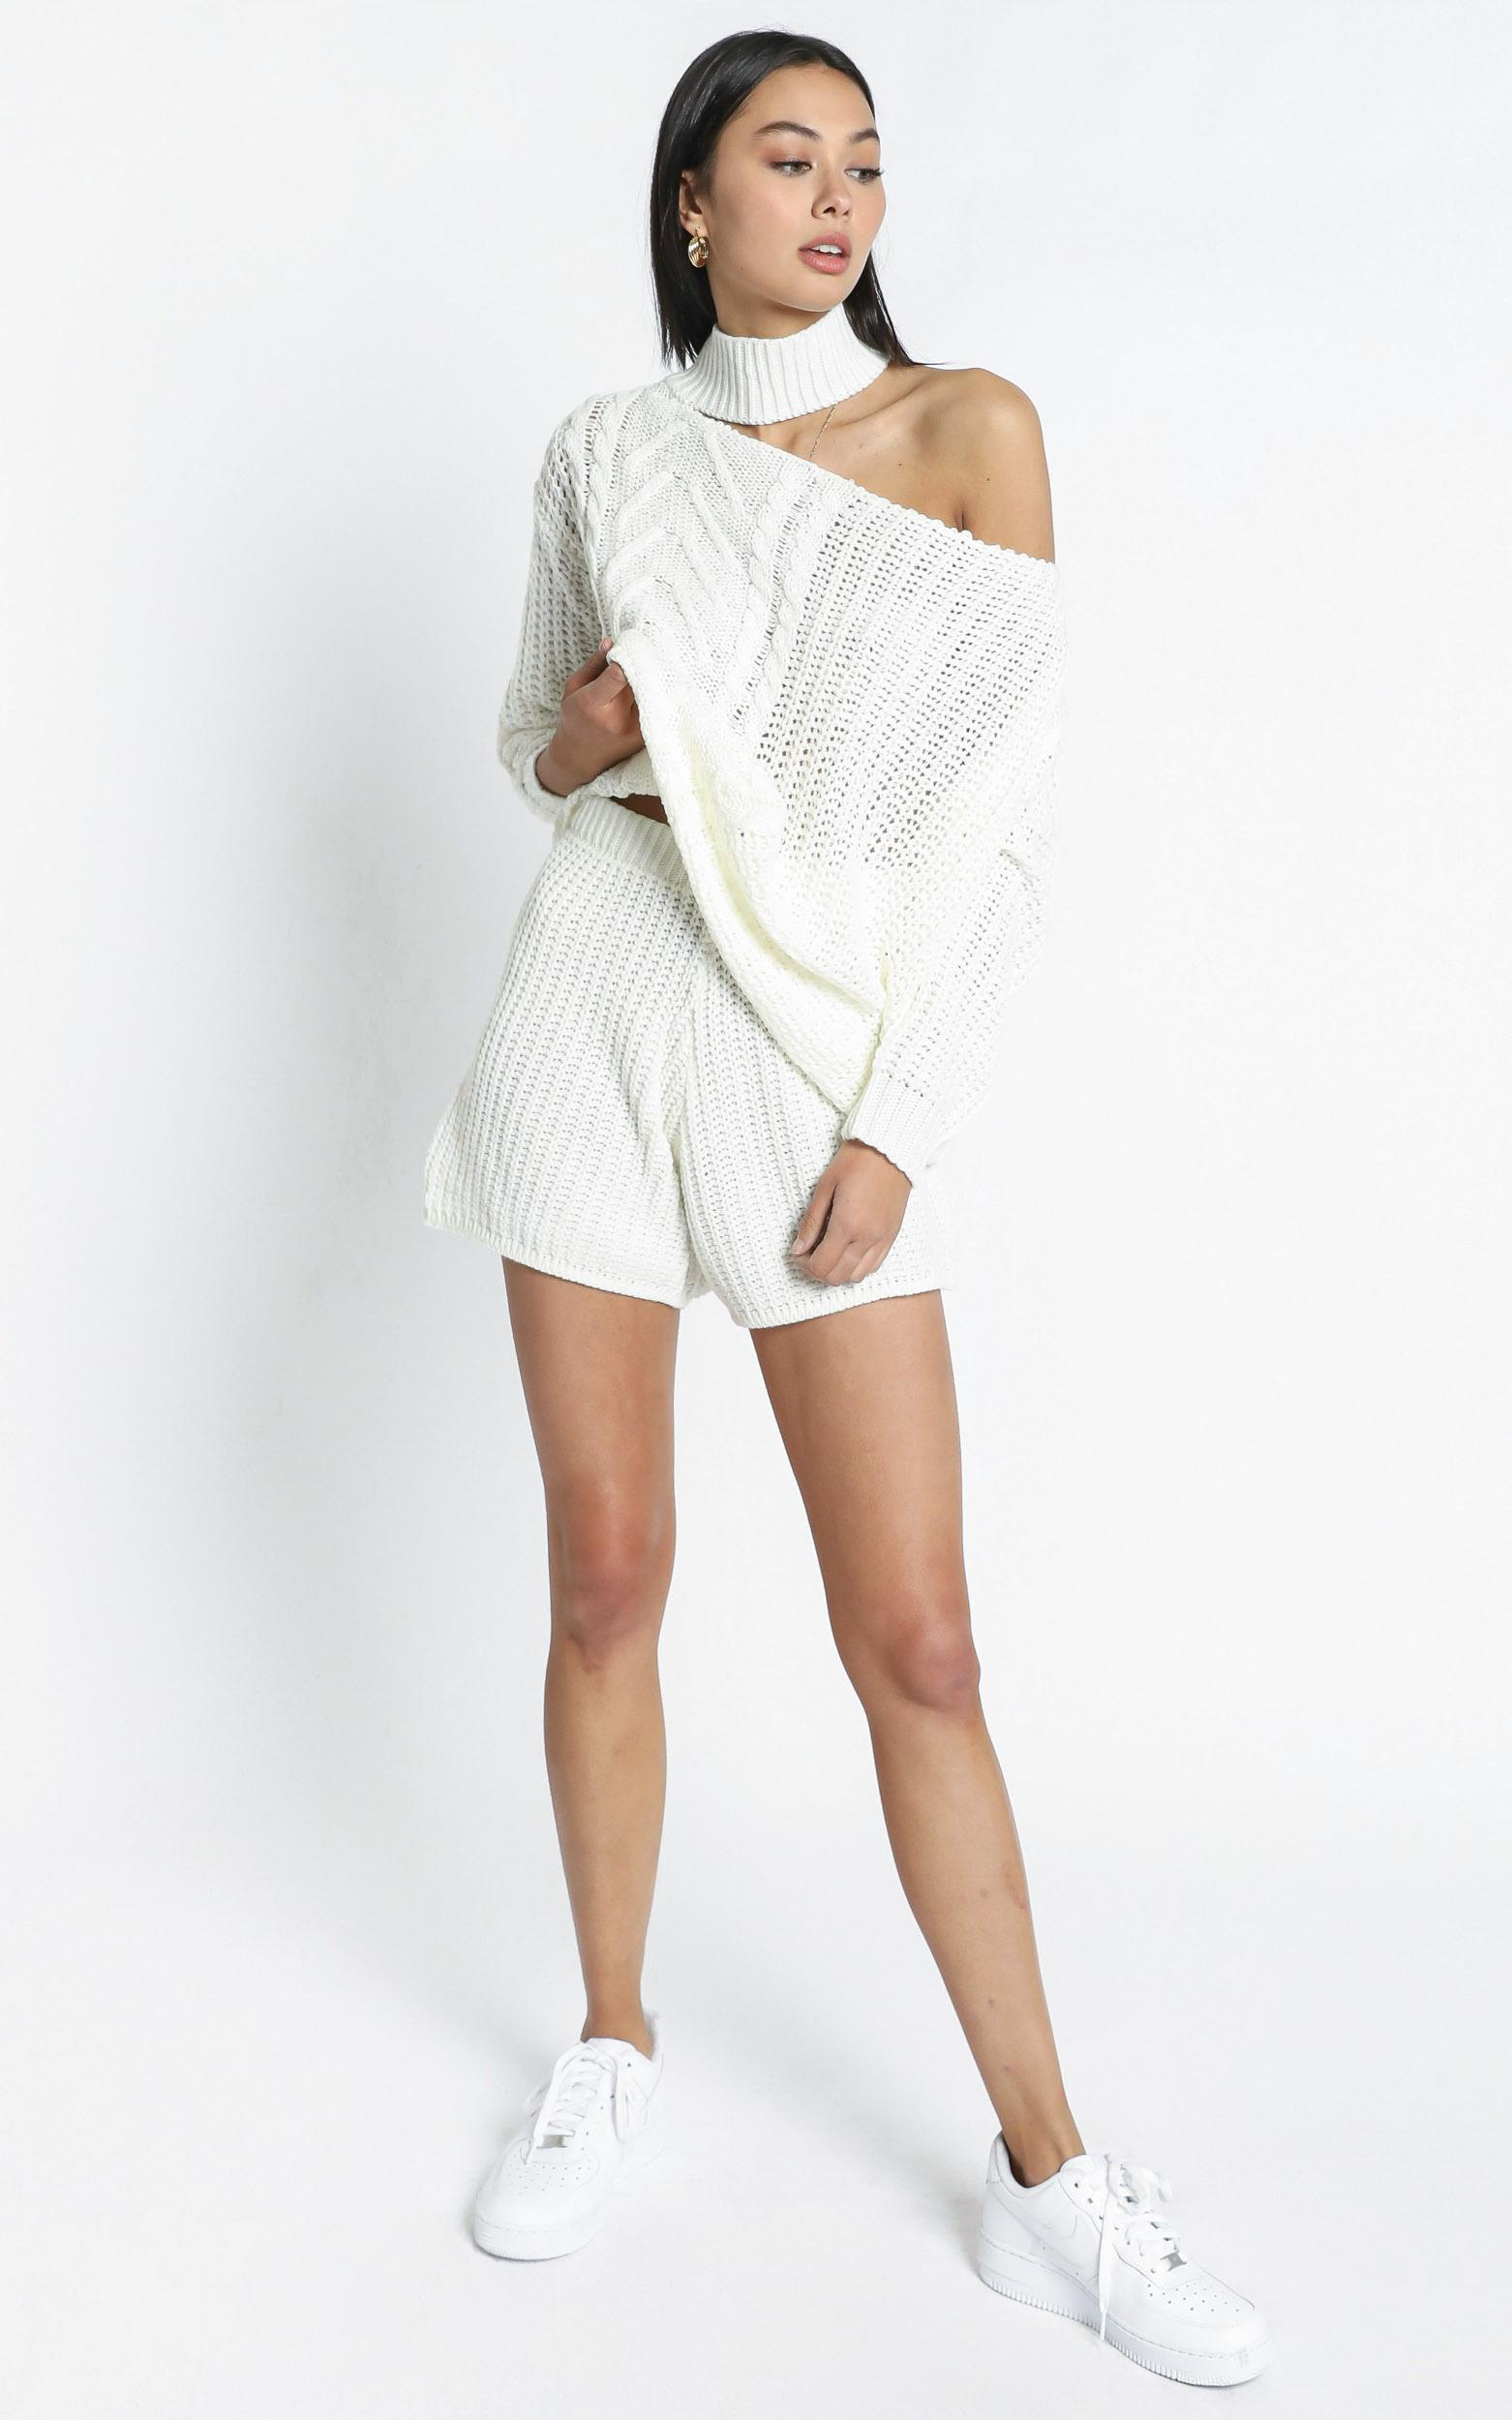 Elli Two Piece Set in White - L/XL, White, hi-res image number null